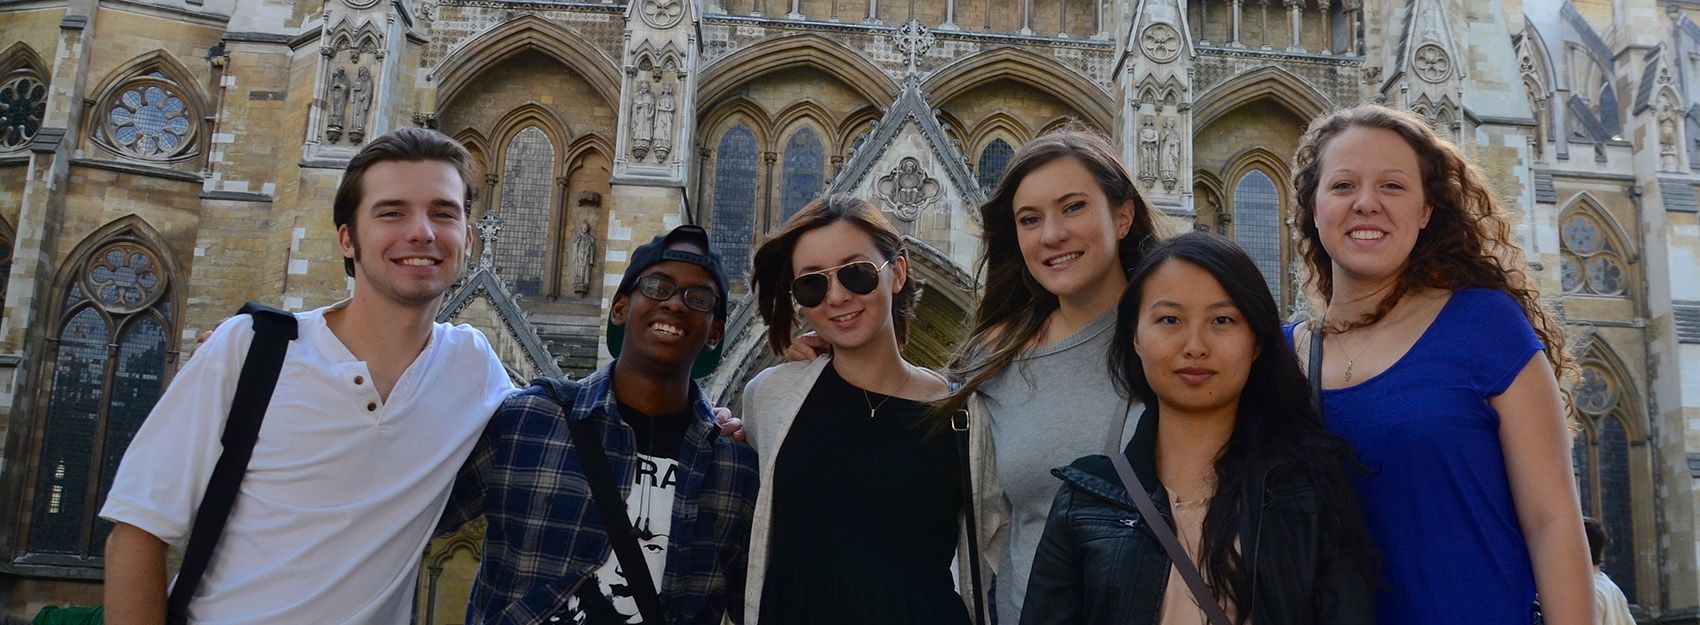 Students at Westminster Abbey